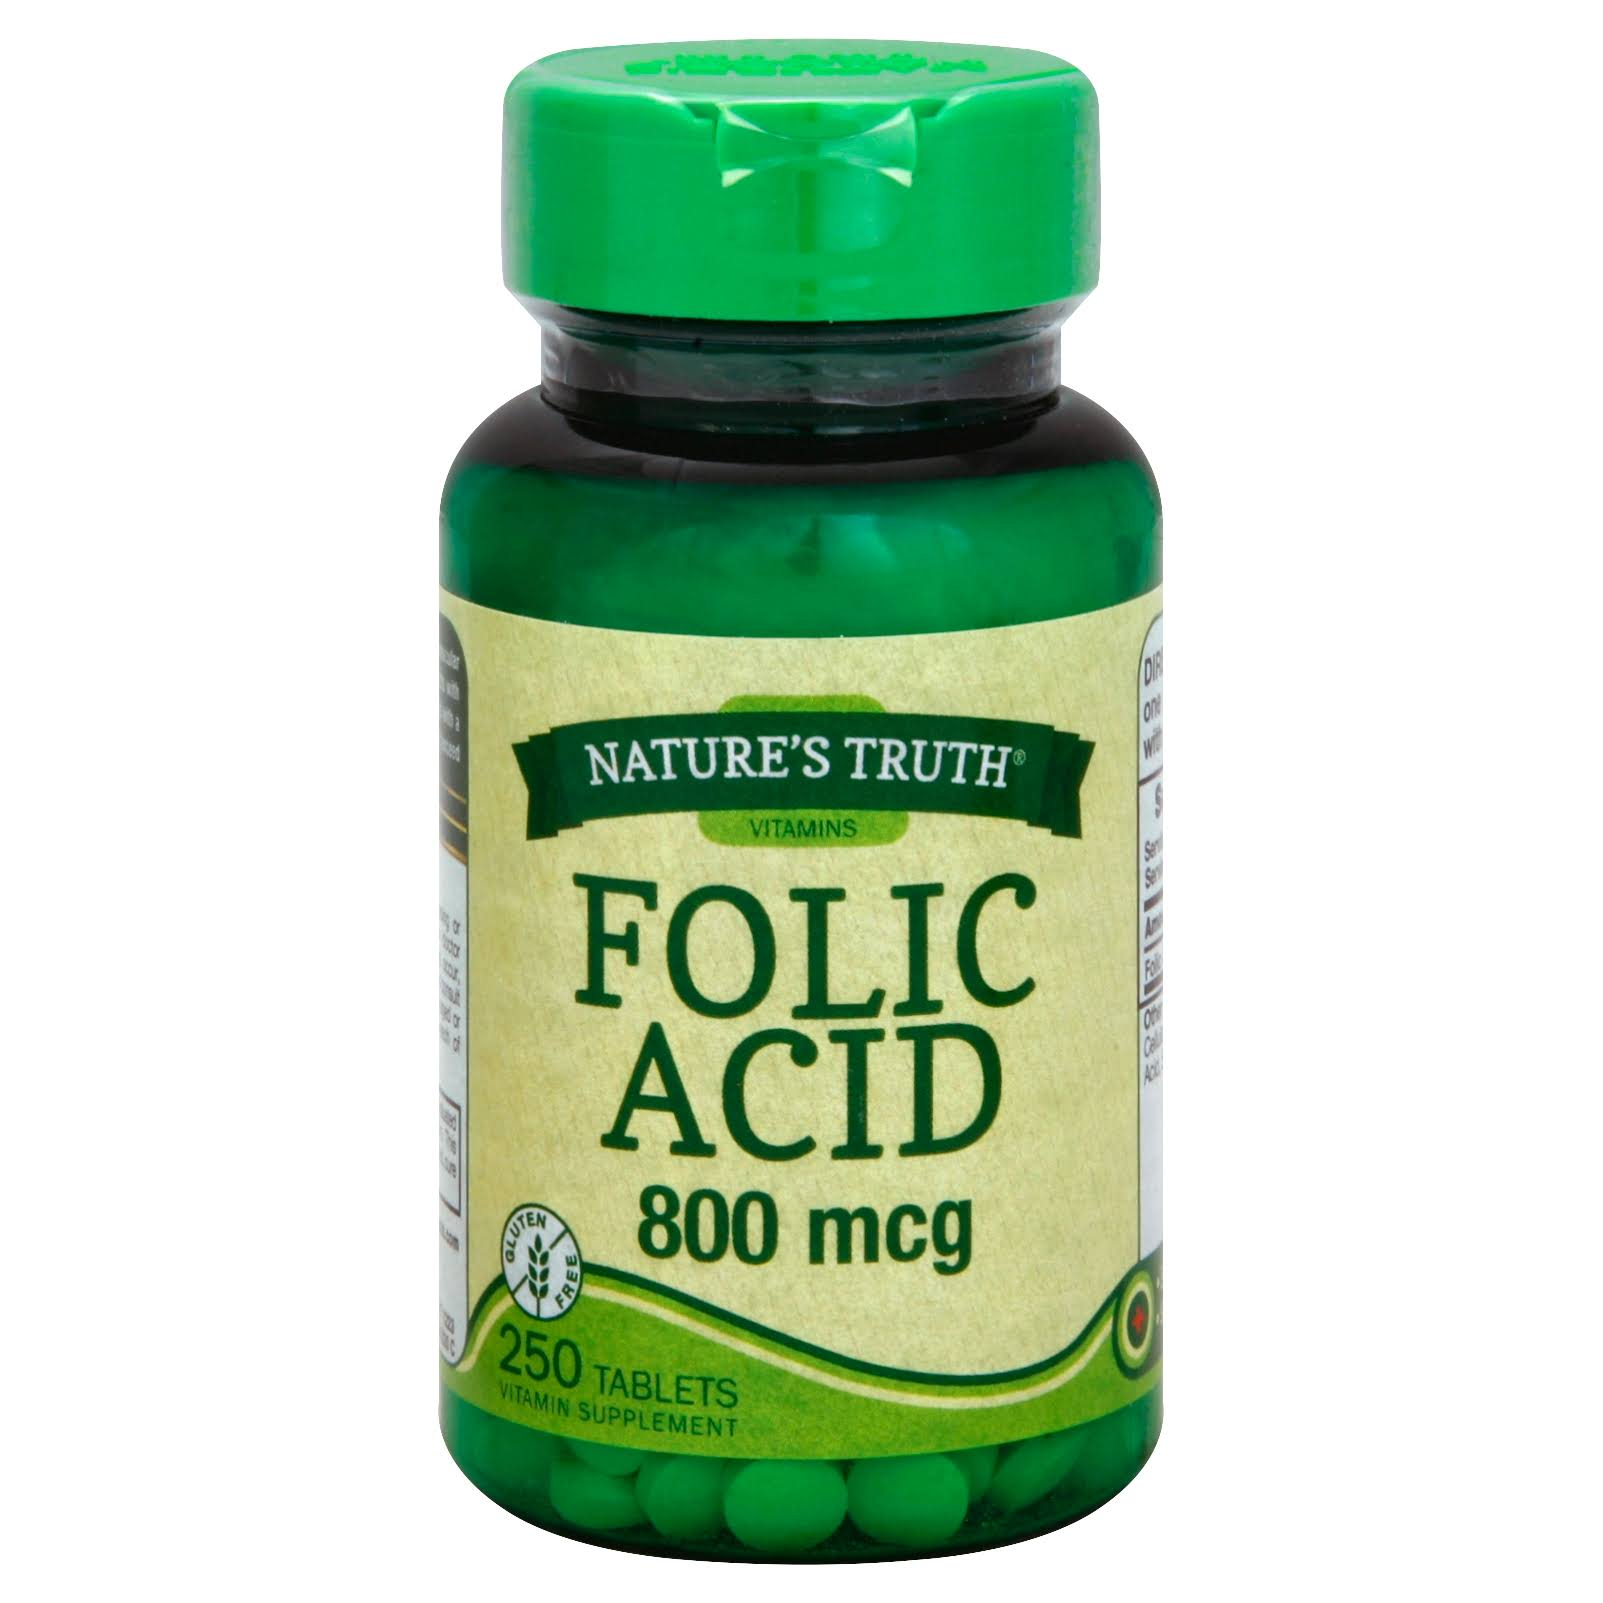 Nature's Truth Folic Acid Herbal Supplement - 250 Count